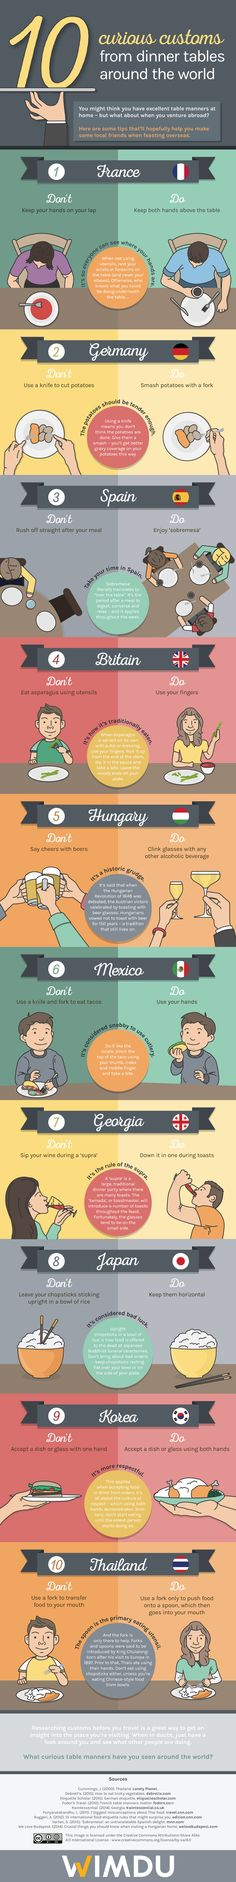 Dining Customs from Around the World - Table Manners #culture #infographic